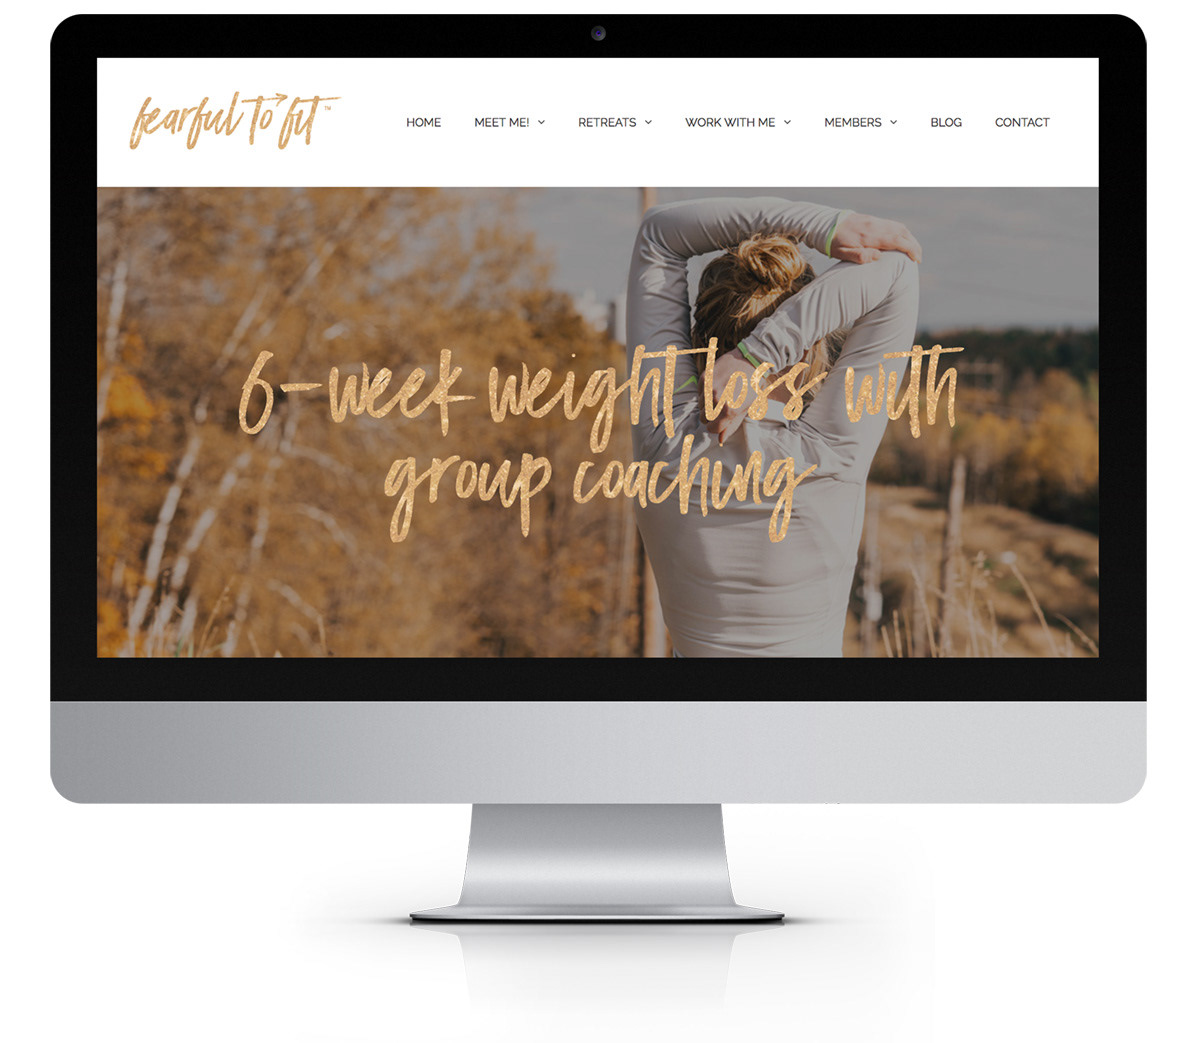 Wordpress Website Design for Health & Wellness Coach